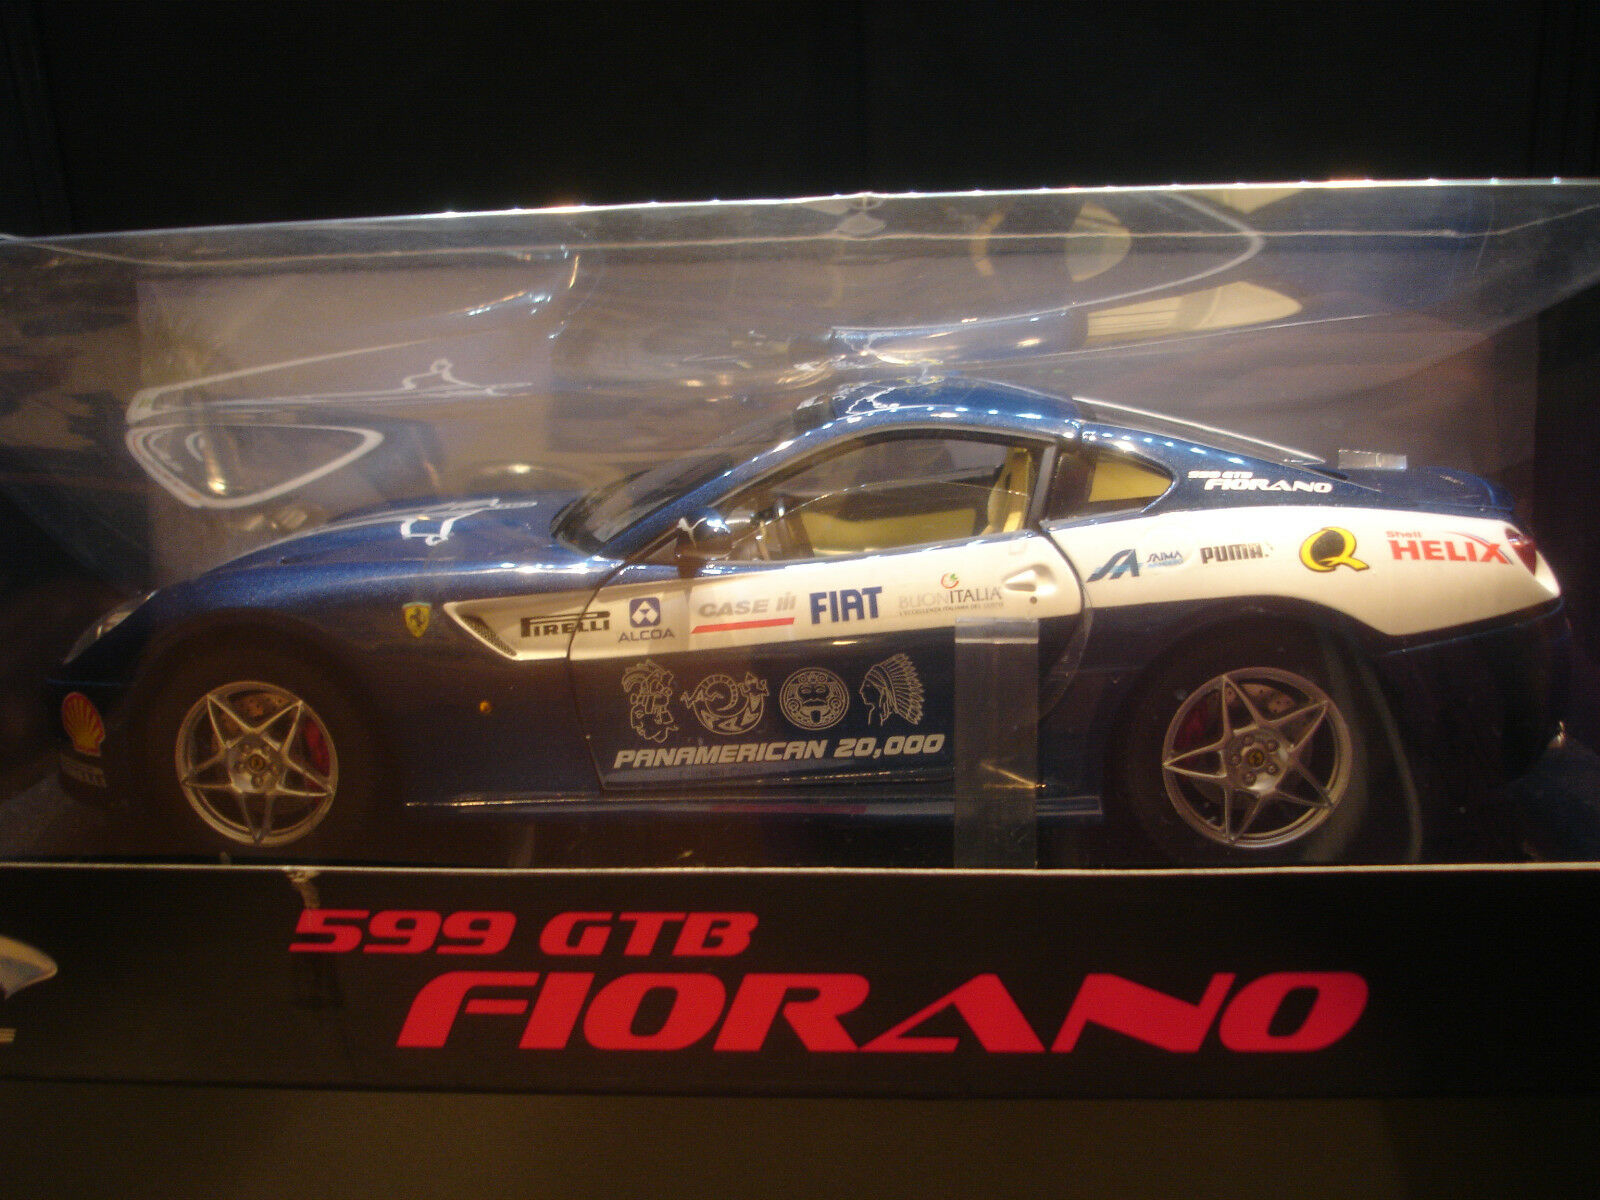 Ferrari 599 Gtb Fiorano Panamerican 20000 Hot Wheels Elite 1 18